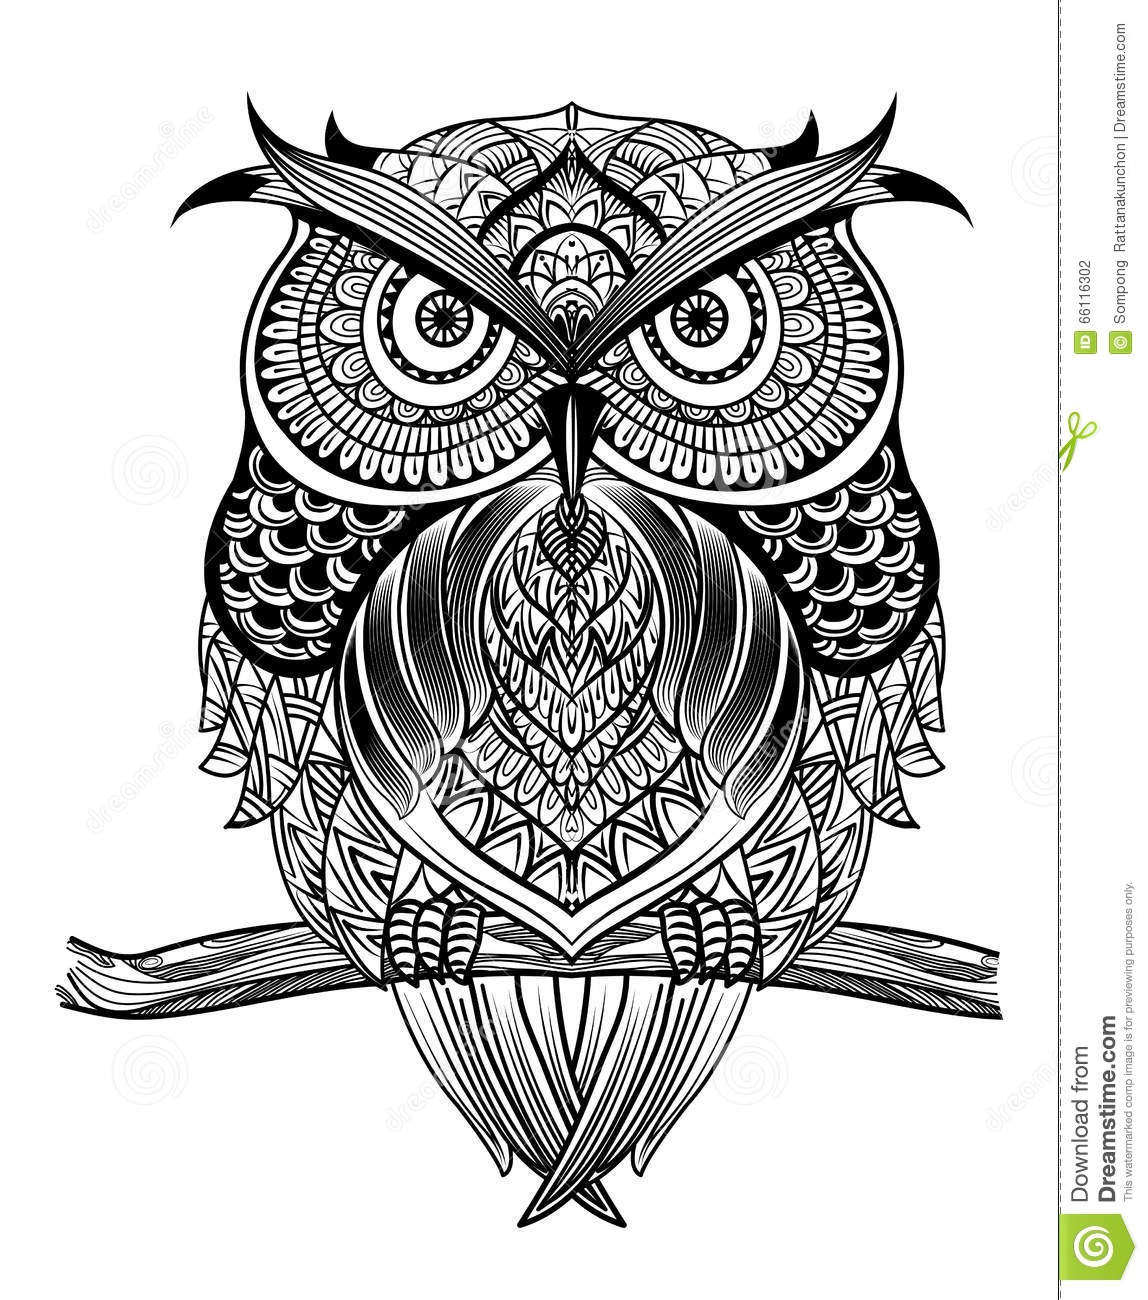 adult coloring pages elephant - stock illustration line art owl vector hand drawn sitting branch black white zentangle ethnic patterned illustration antistress coloring image